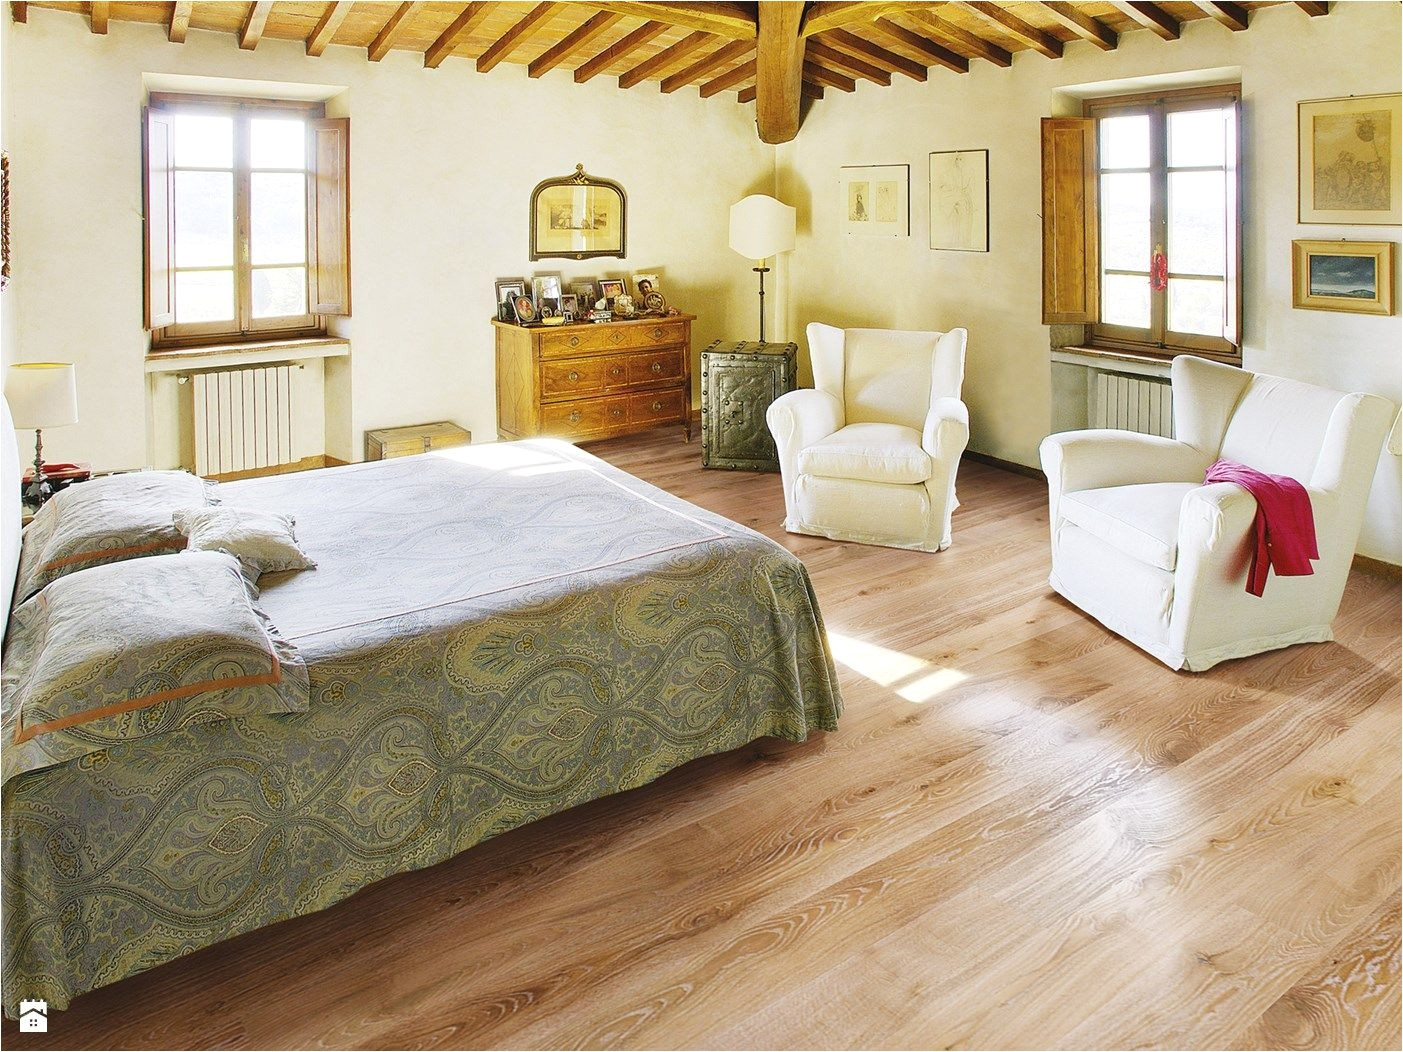 how much to refinish engineered hardwood floors of white washed engineered wood flooring sypialnia styl rustykalny zdja with white washed engineered wood flooring sypialnia styl rustykalny zdja cie od barlinek bedroom